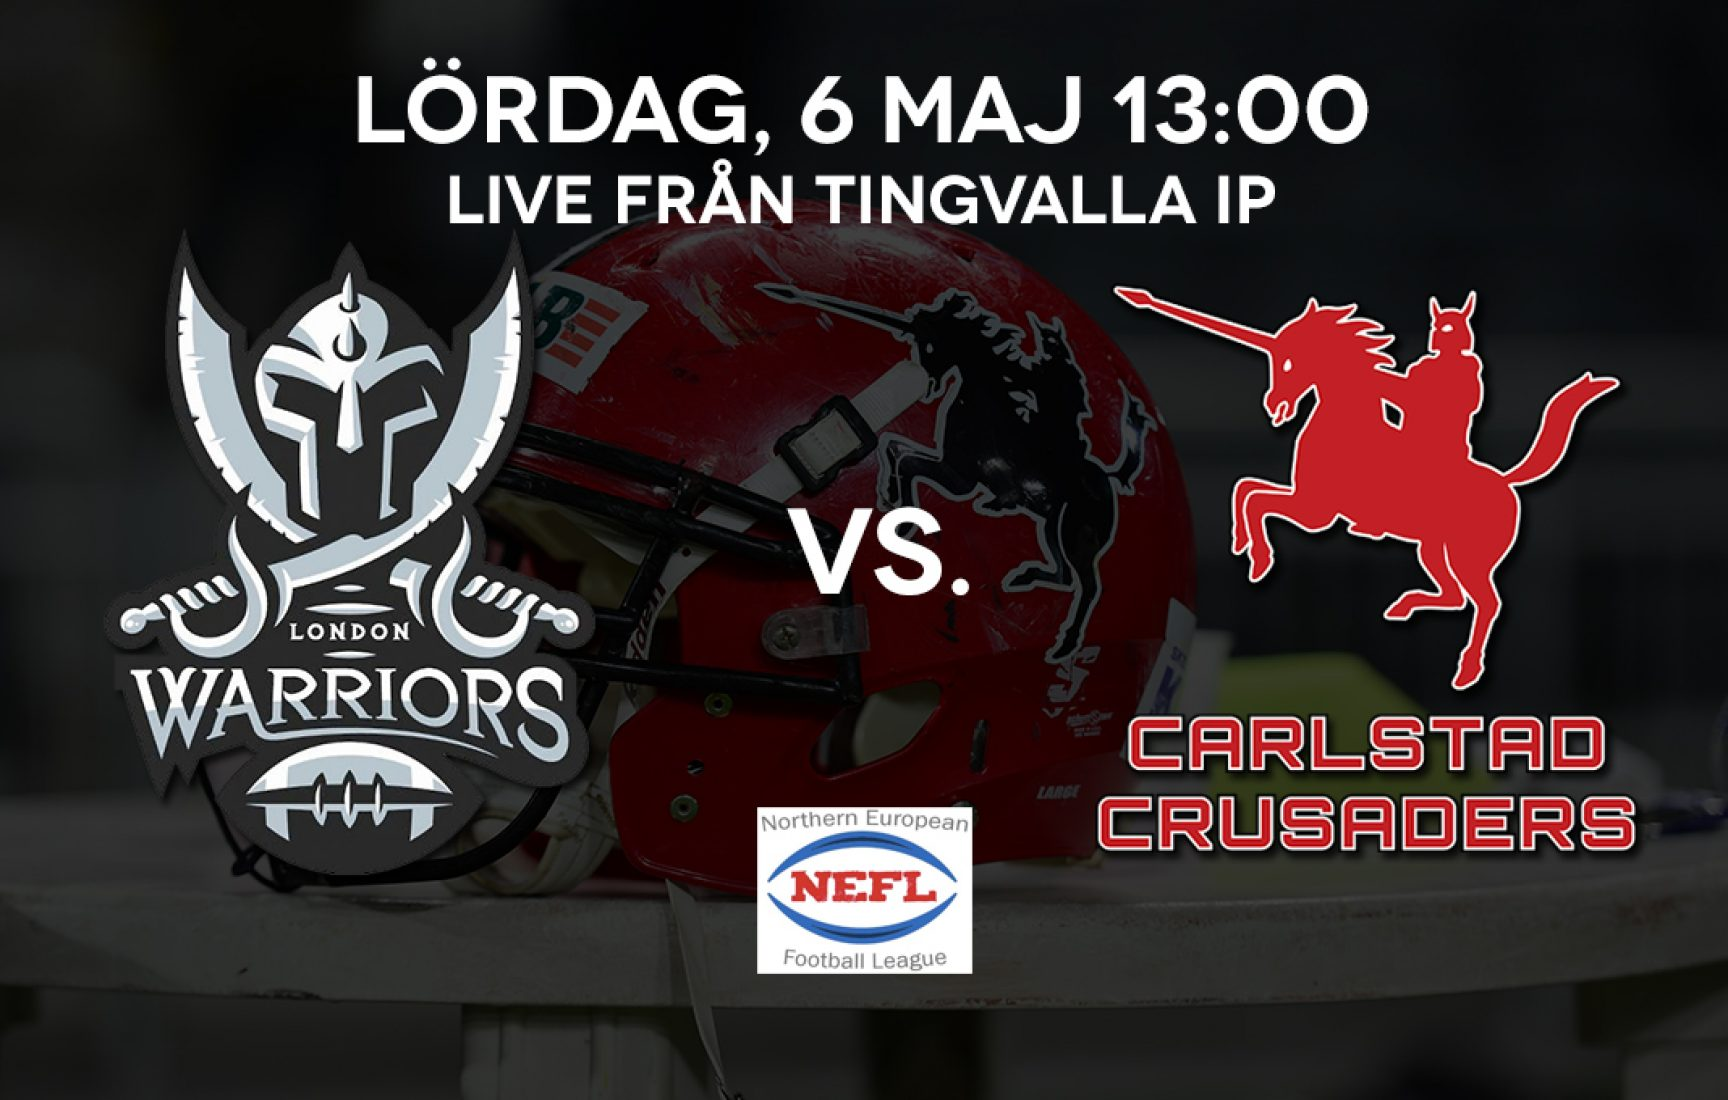 Carlstad Crusaders vs. London Warriors